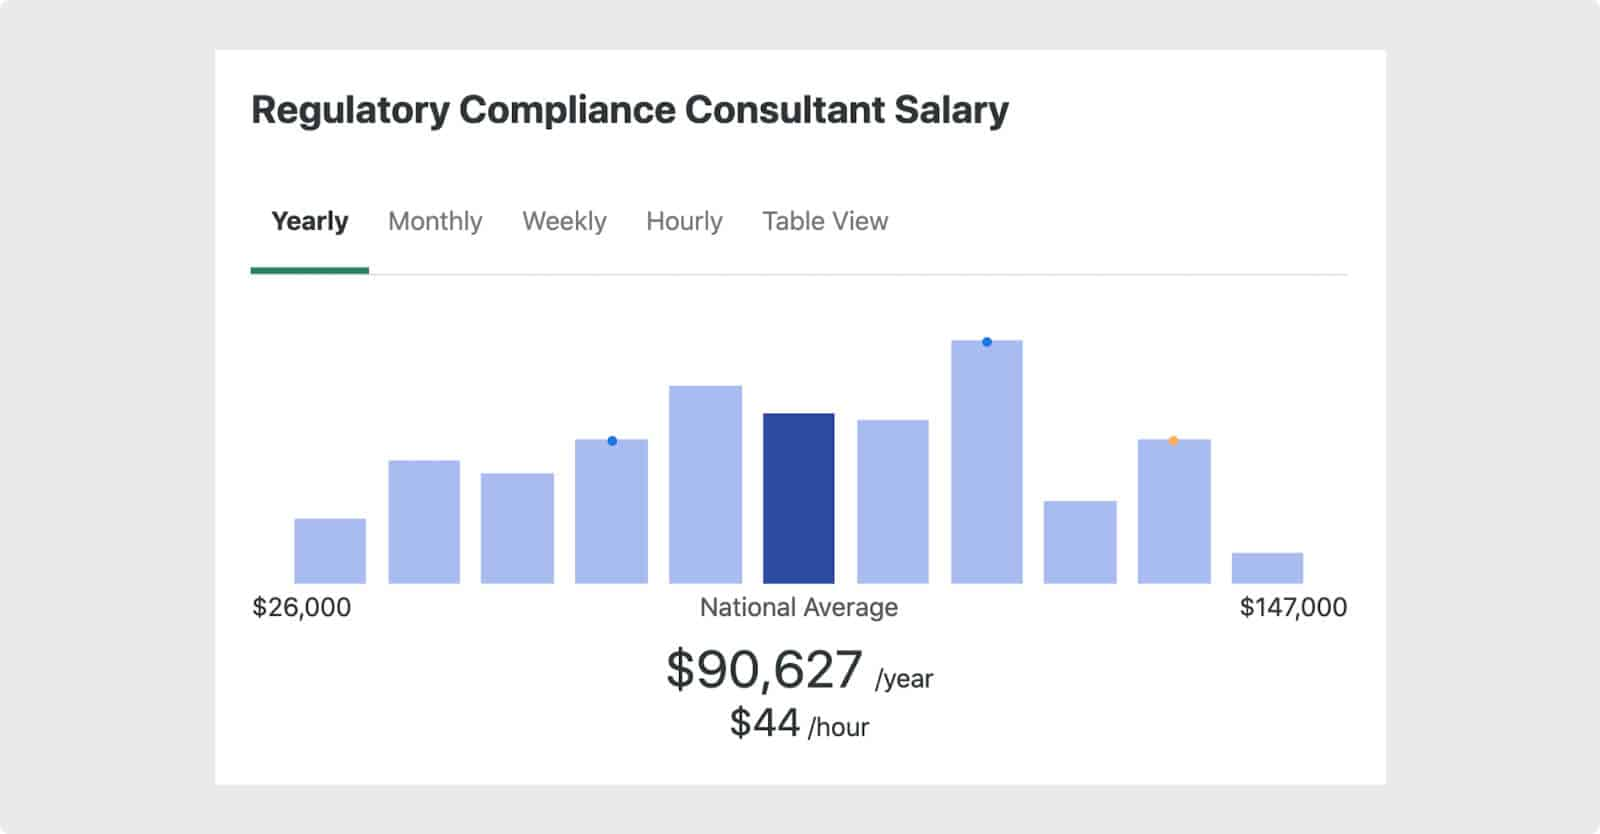 Regulatory compliance consultants earn over $90K per year. However, independent consultants often bill higher than $44/hour.